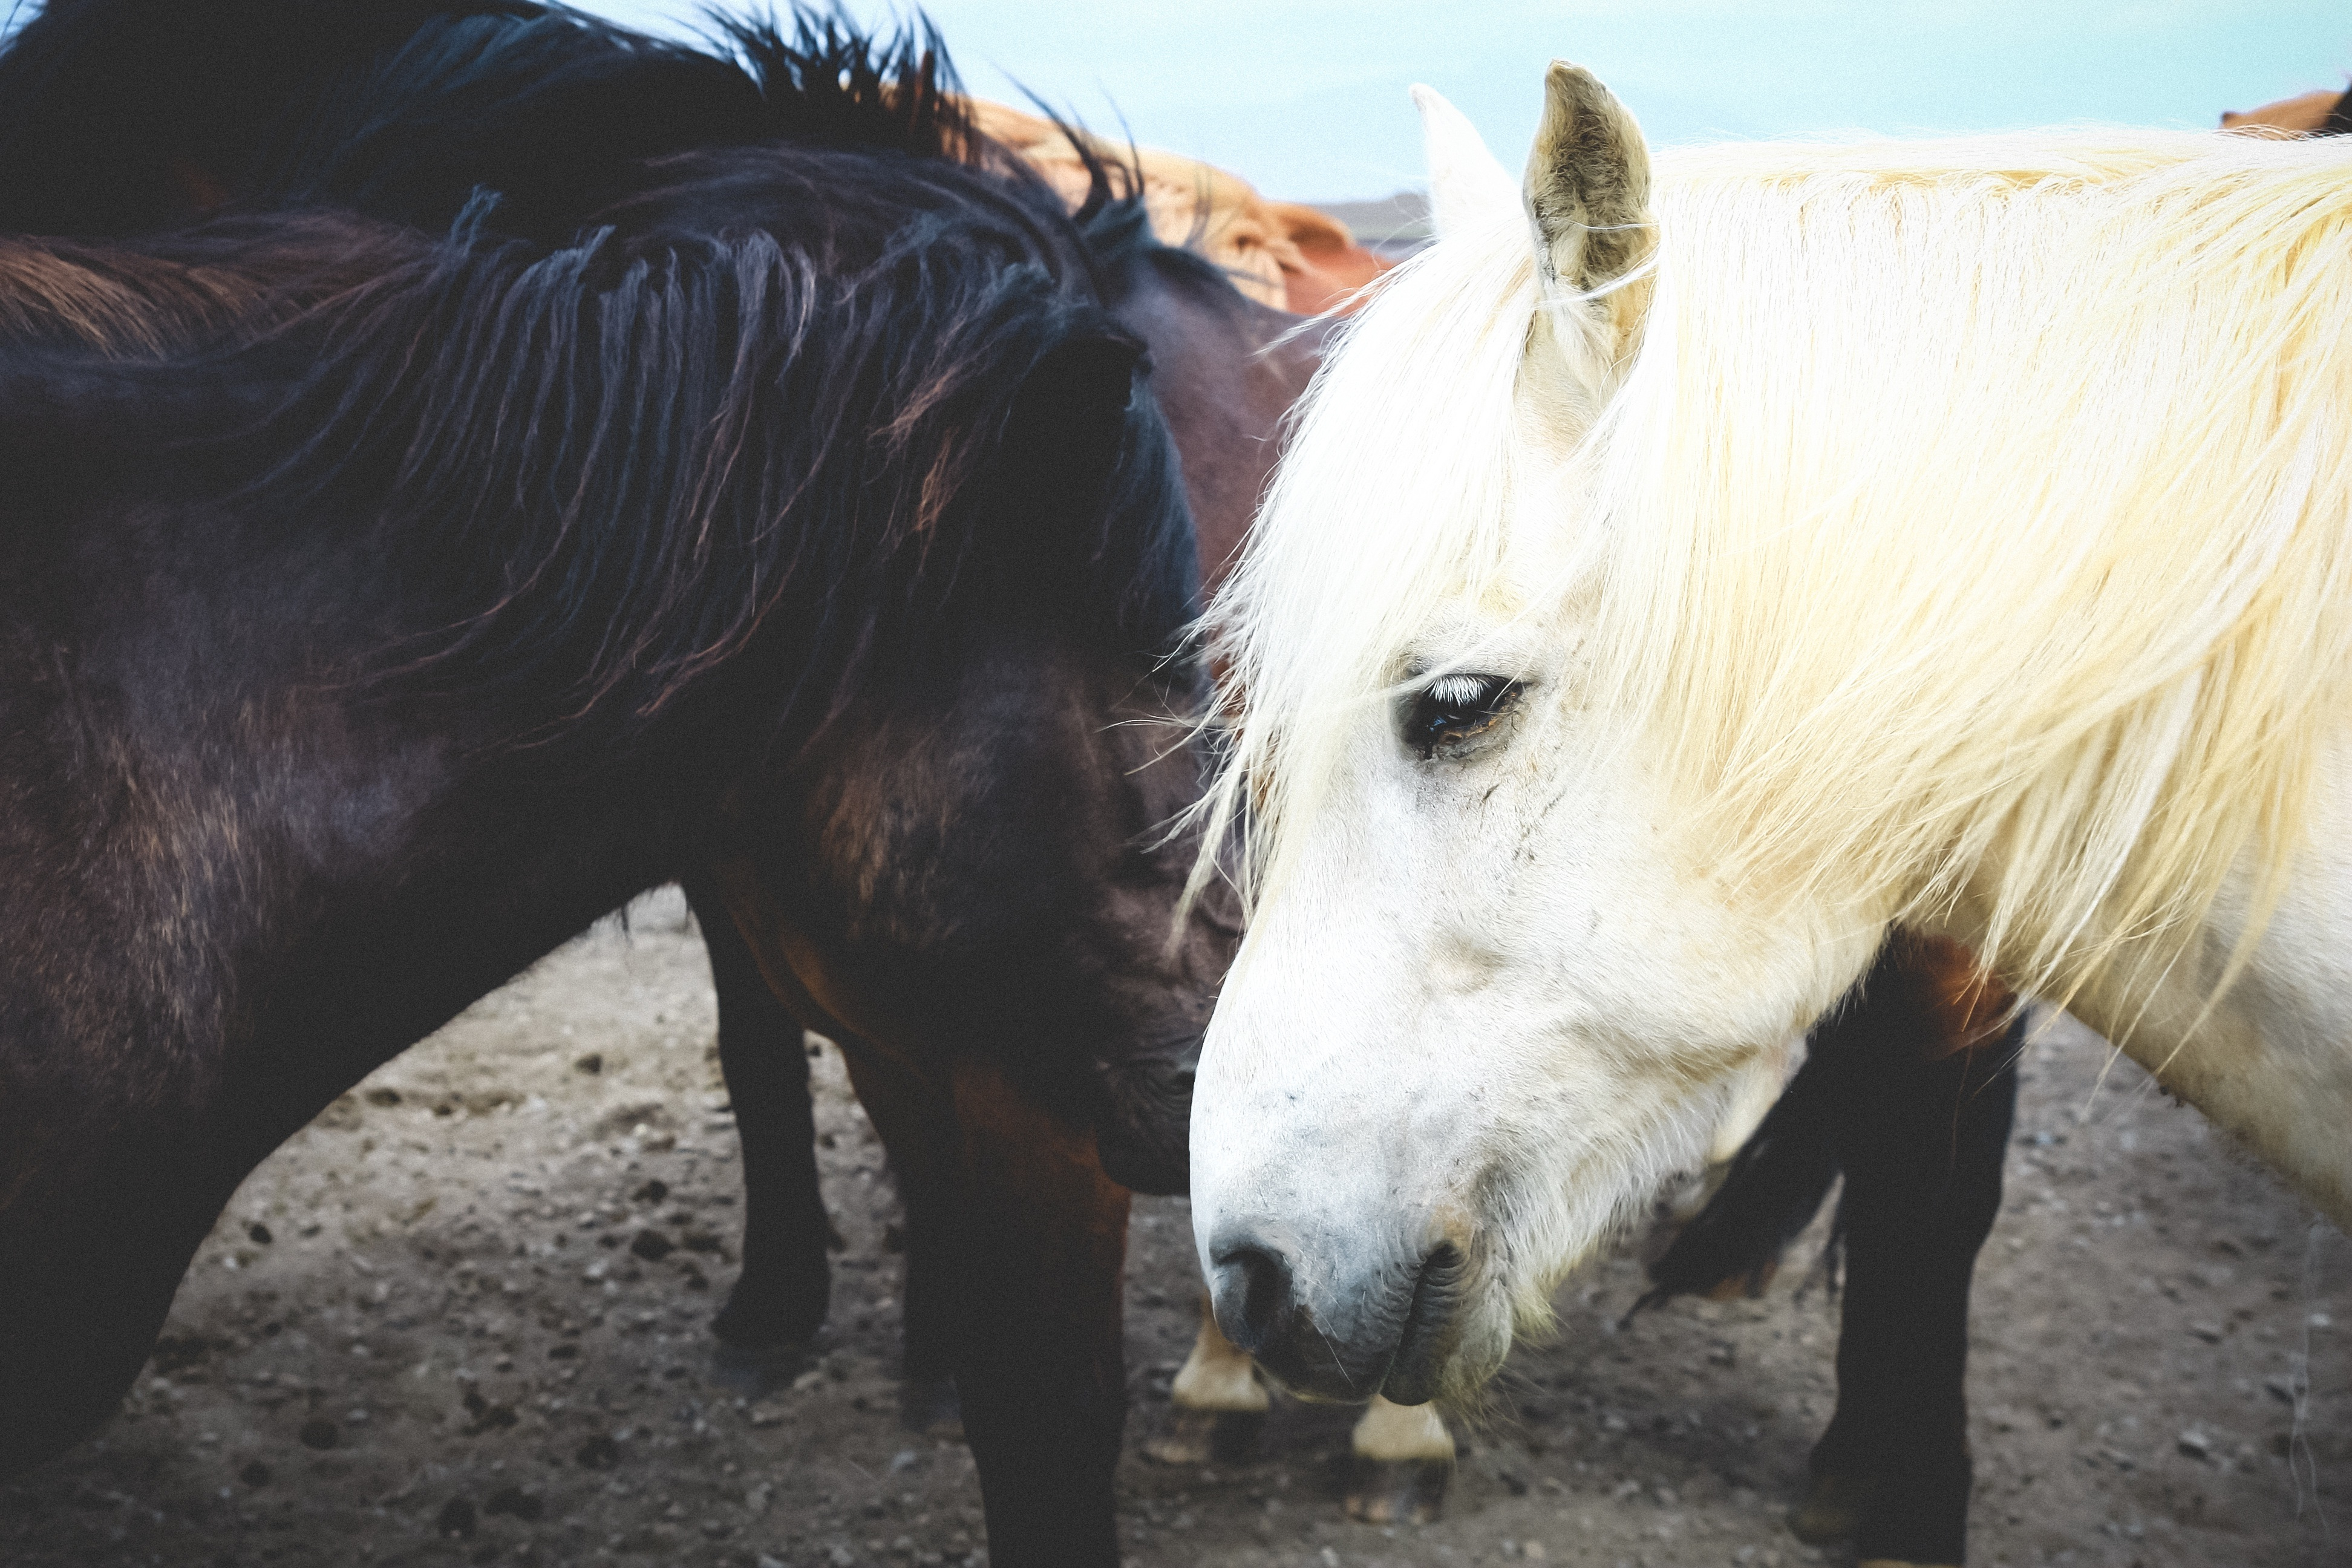 85889 download wallpaper Animals, Horses, Couple, Pair, Mane screensavers and pictures for free